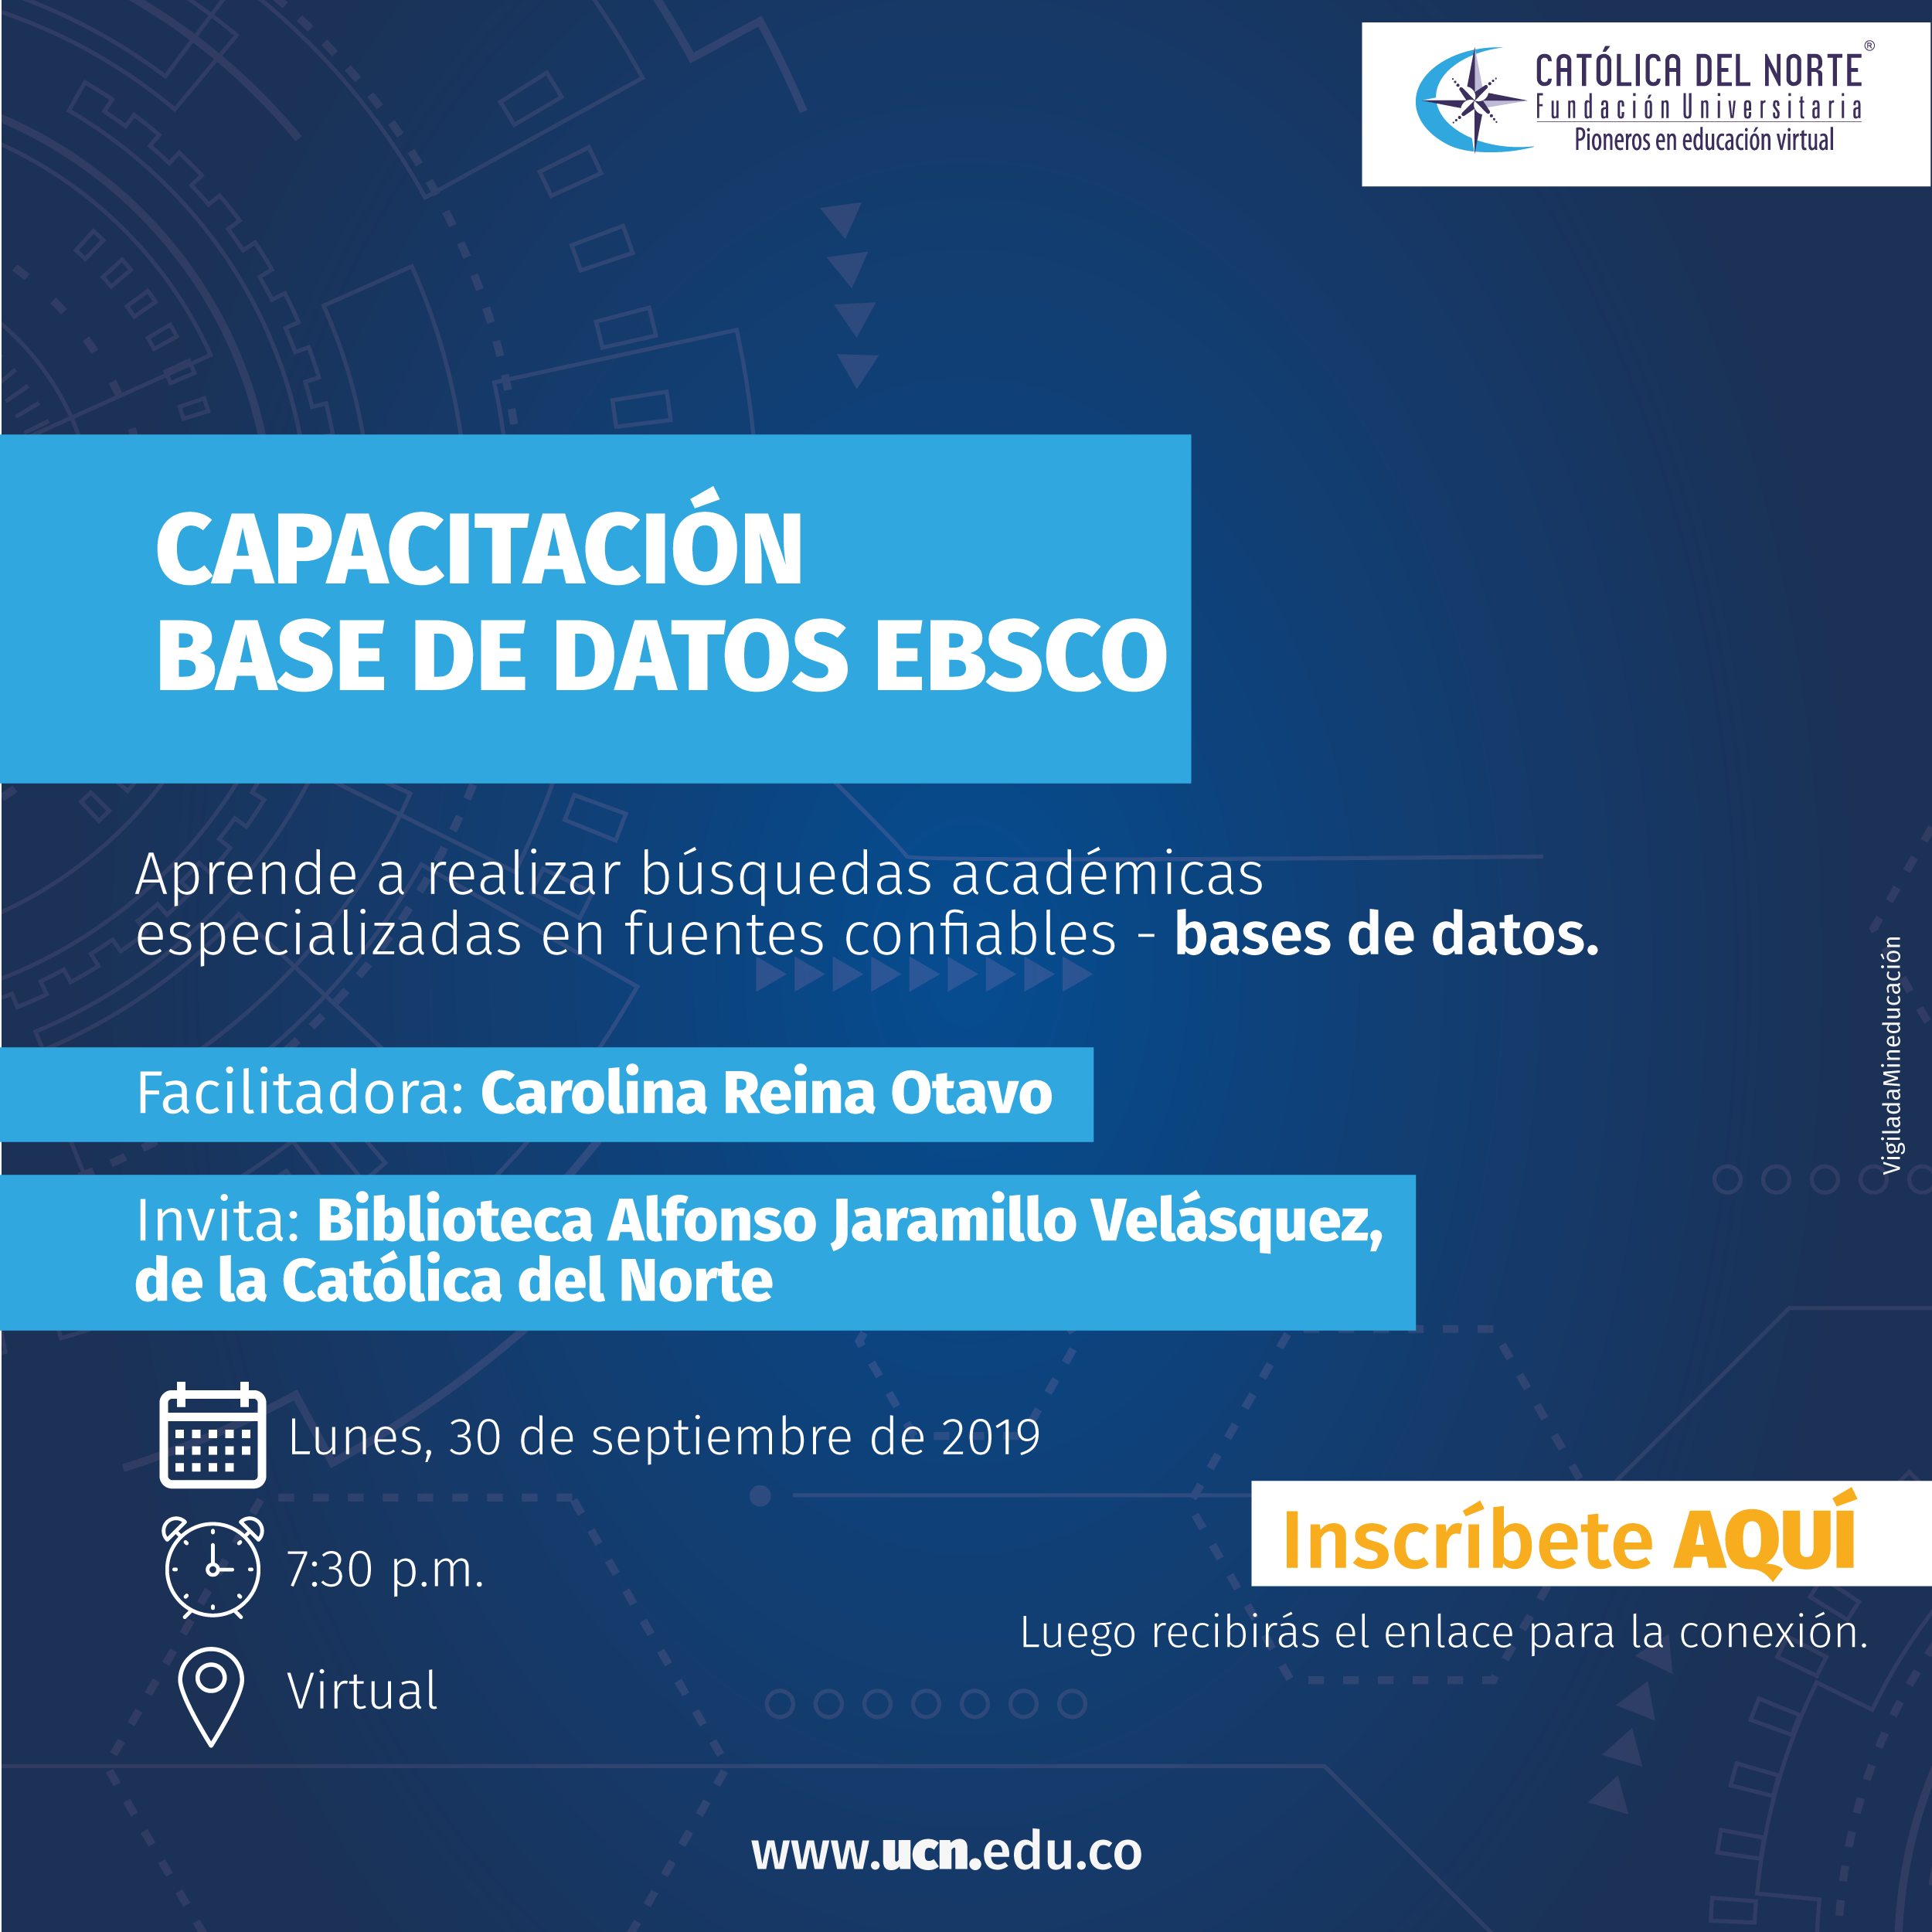 Capacitación base de datos Ebsco